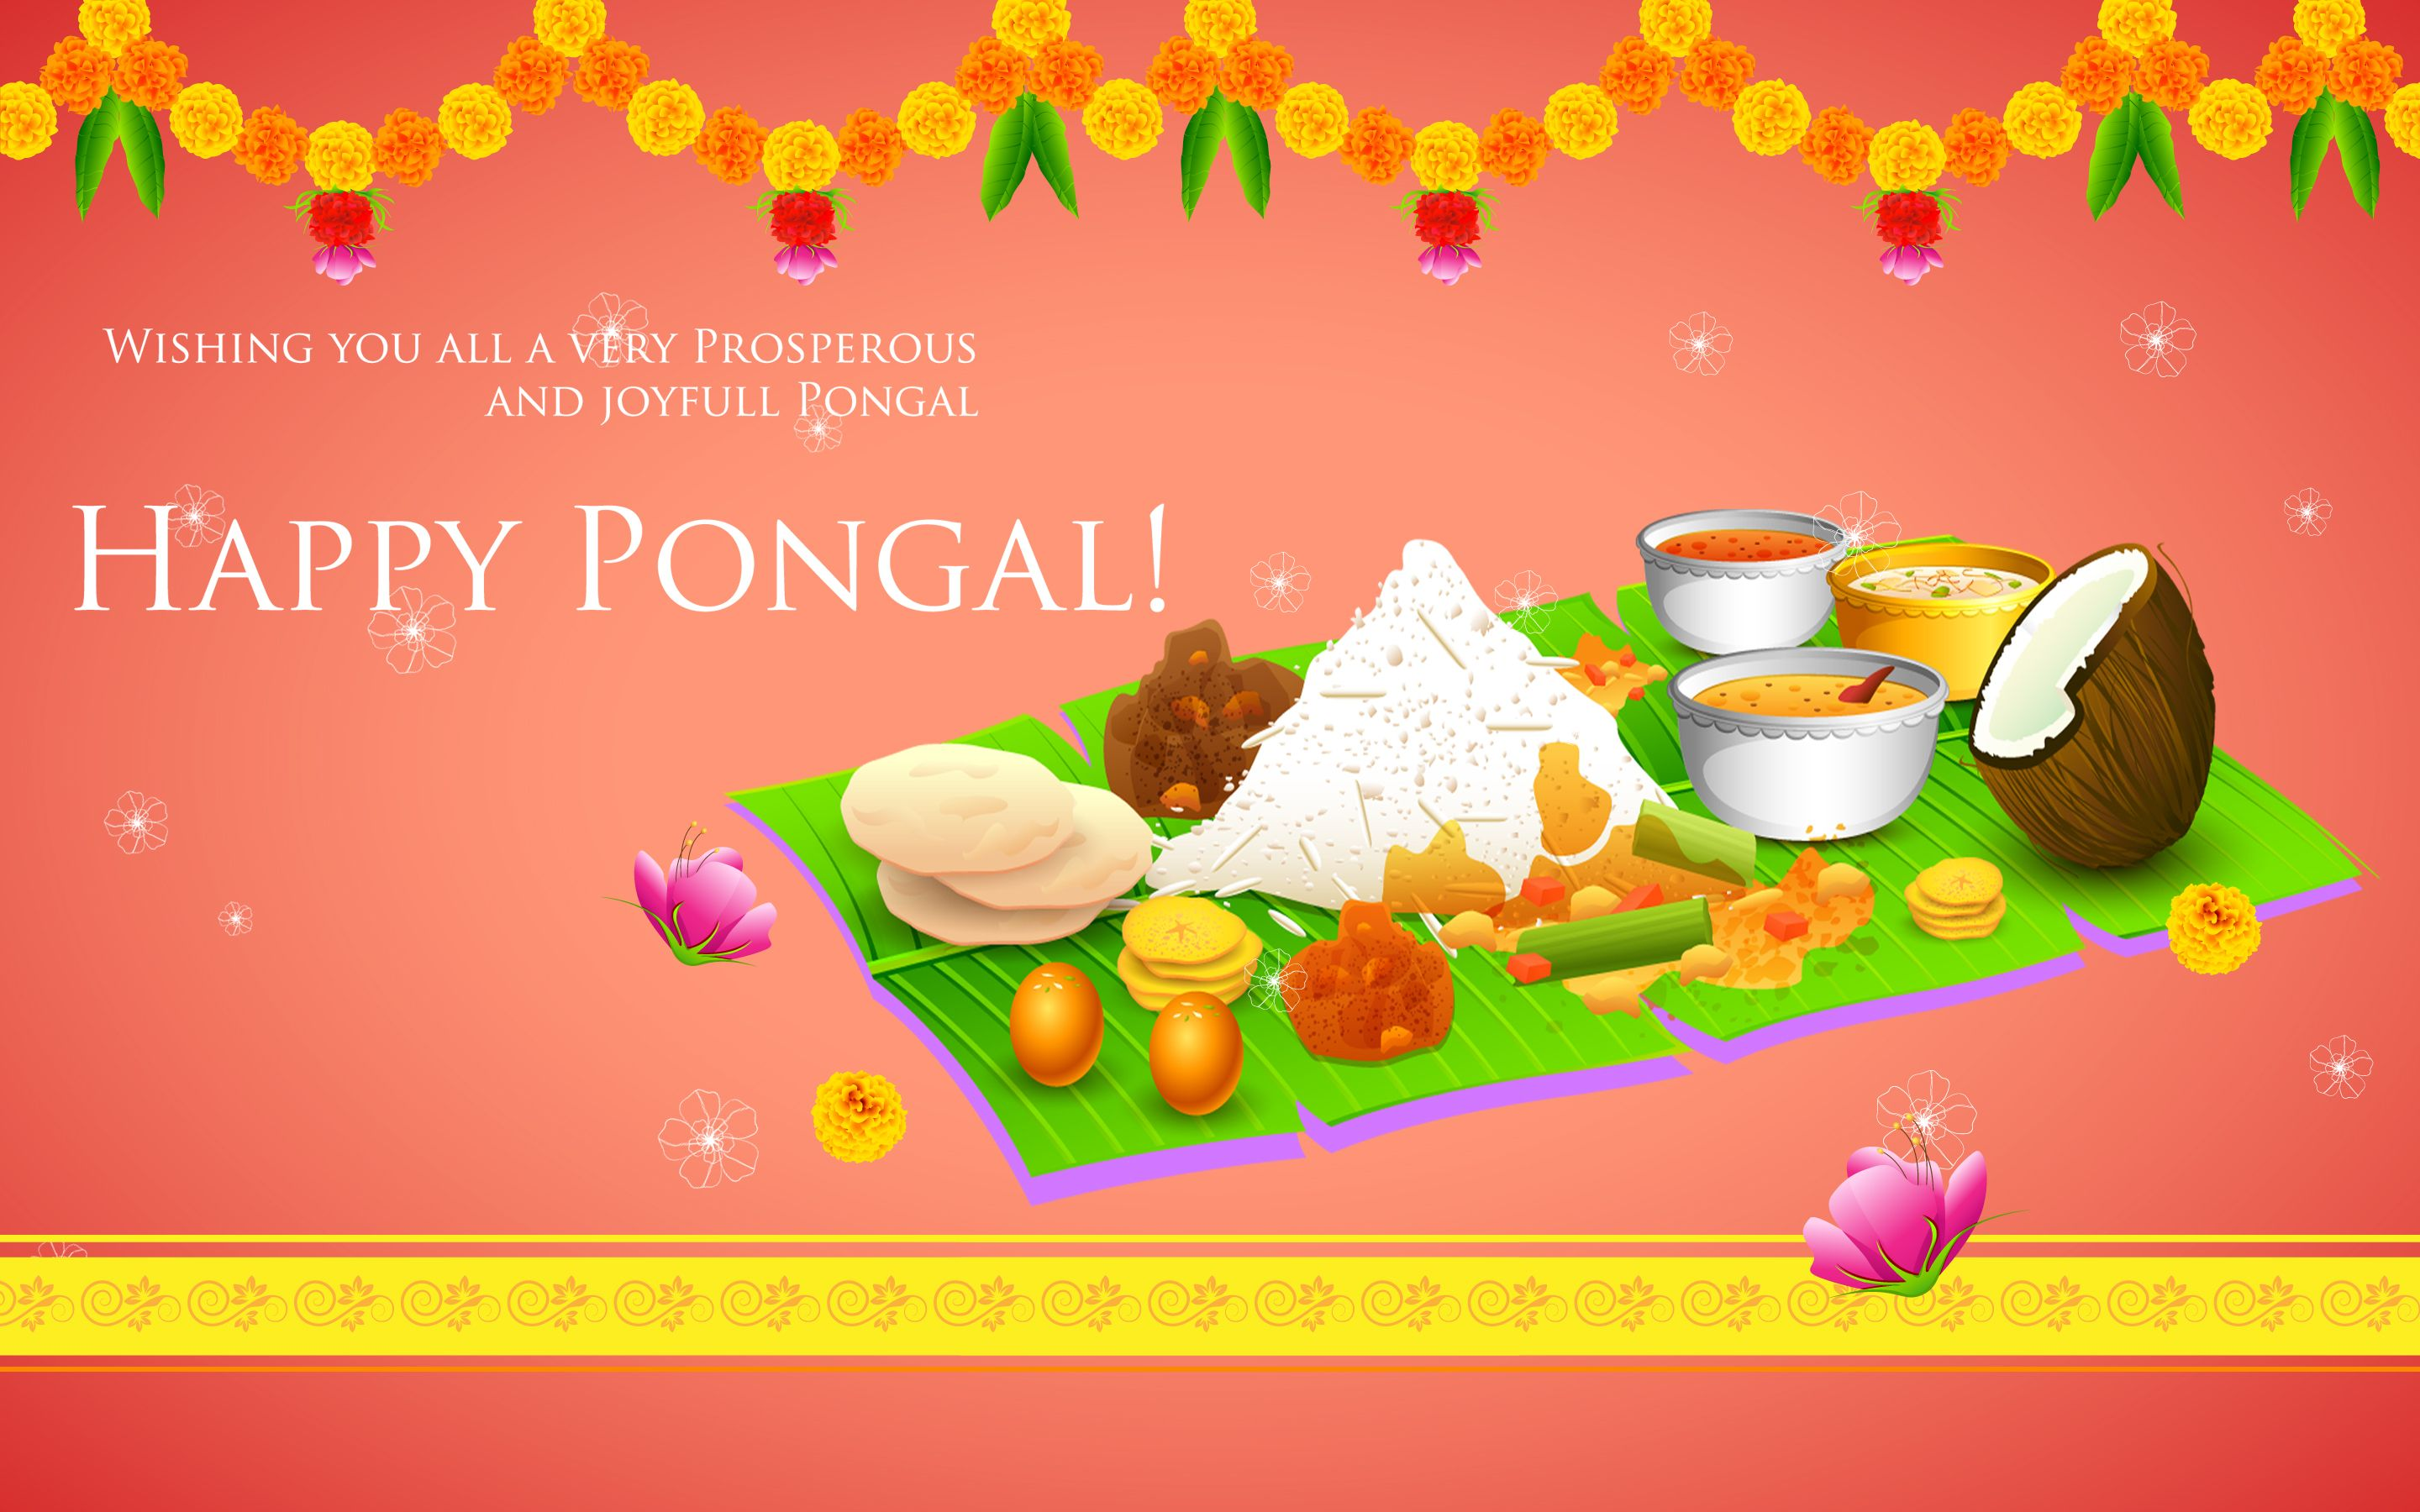 Happy pongal celebration widescreen wallpaper happy pongalwishes happy pongal celebration widescreen wallpaper happy pongalwishesnewhd wallpapersnew kristyandbryce Images